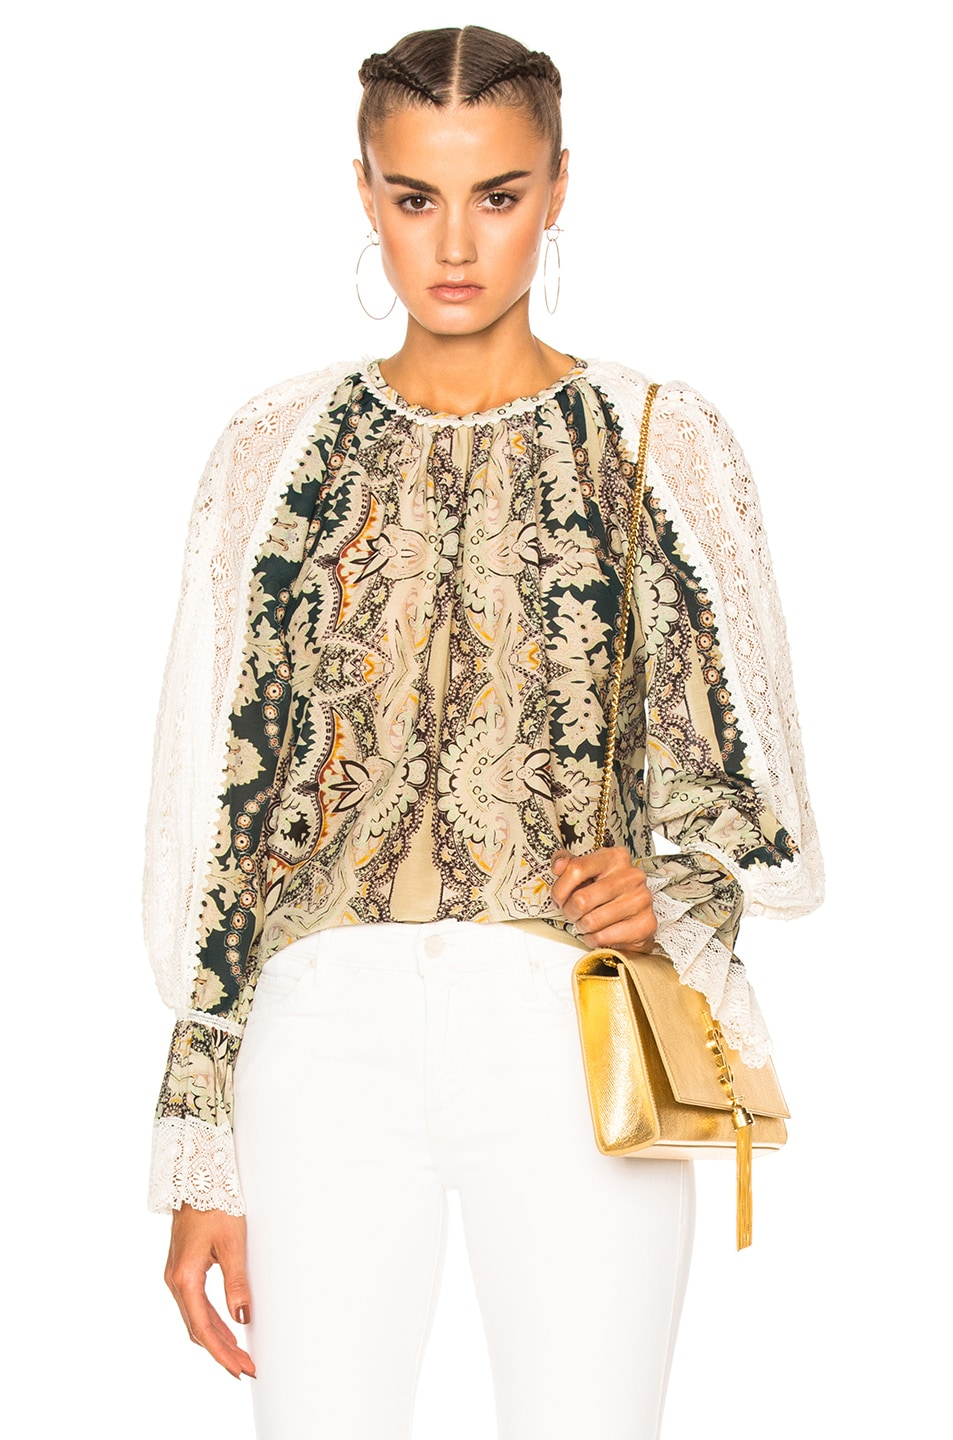 ETRO Printed Cotton And Silk Blouse With Lace at FORWARD